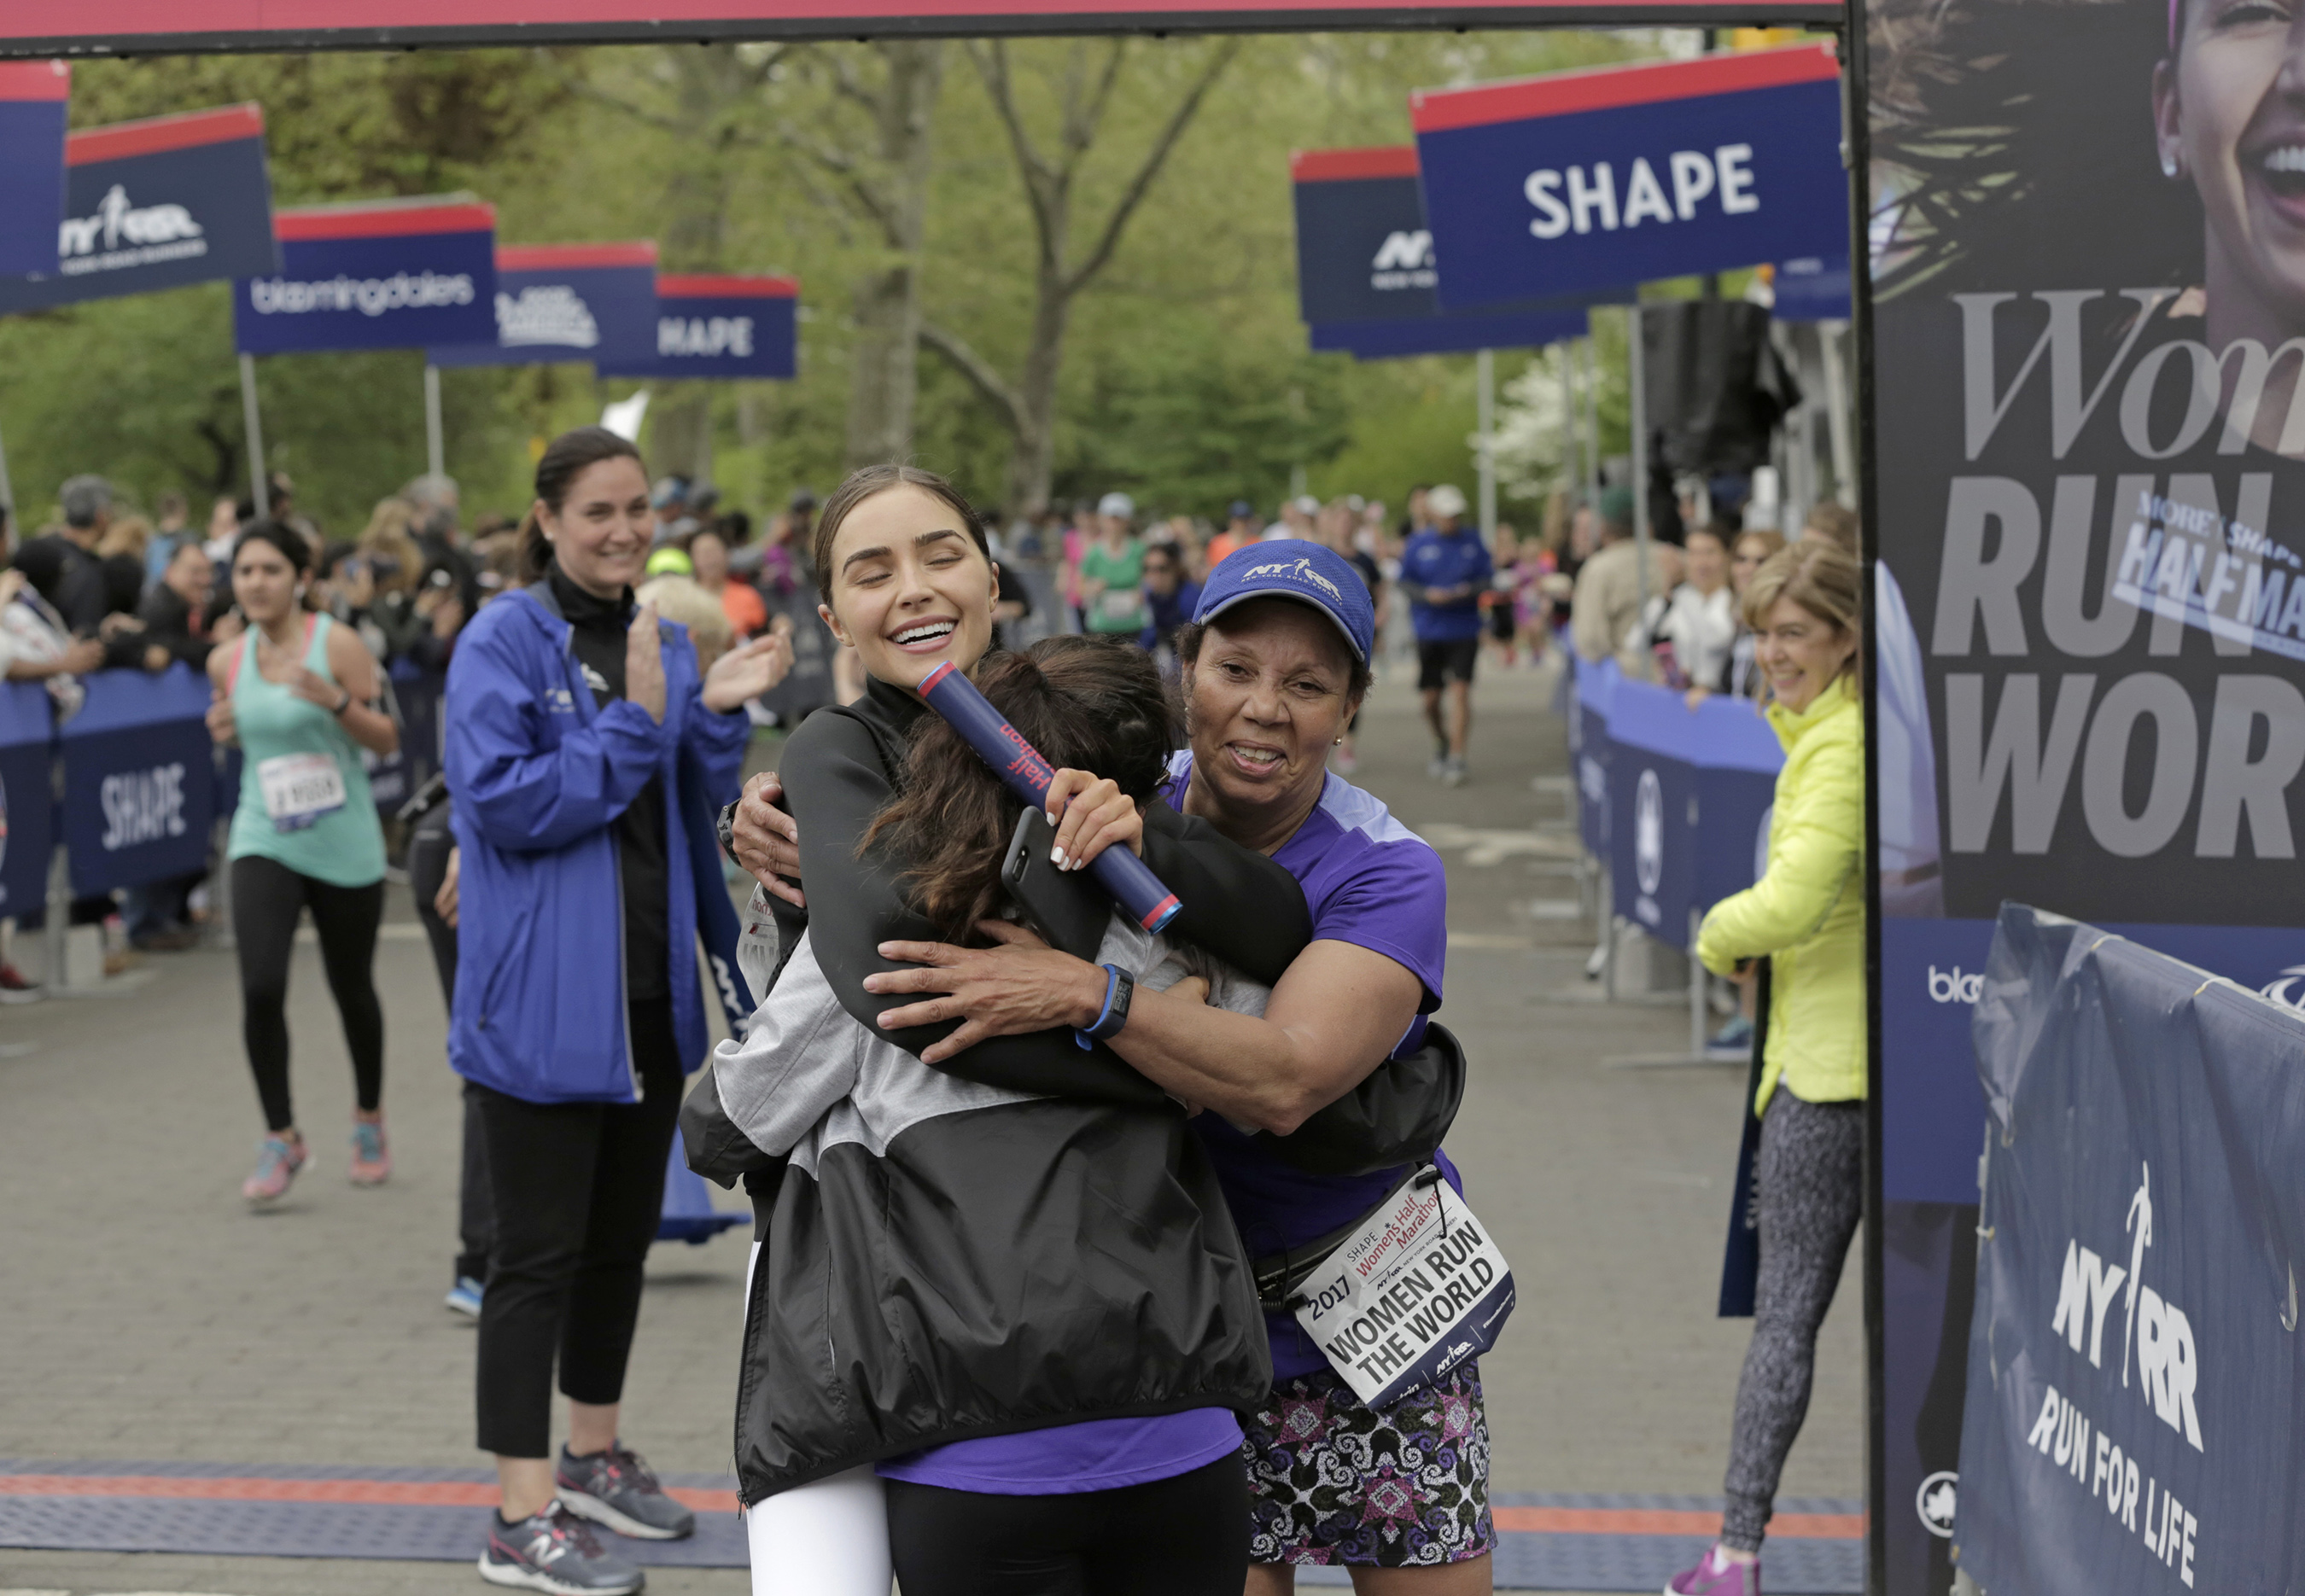 Actress Olivia Culpo and mentee celebrate after completing the final leg of the Women Run the World Relay at the 2017 SHAPE Women's Half Marathon in Central Park on Sunday, April 30, 2017